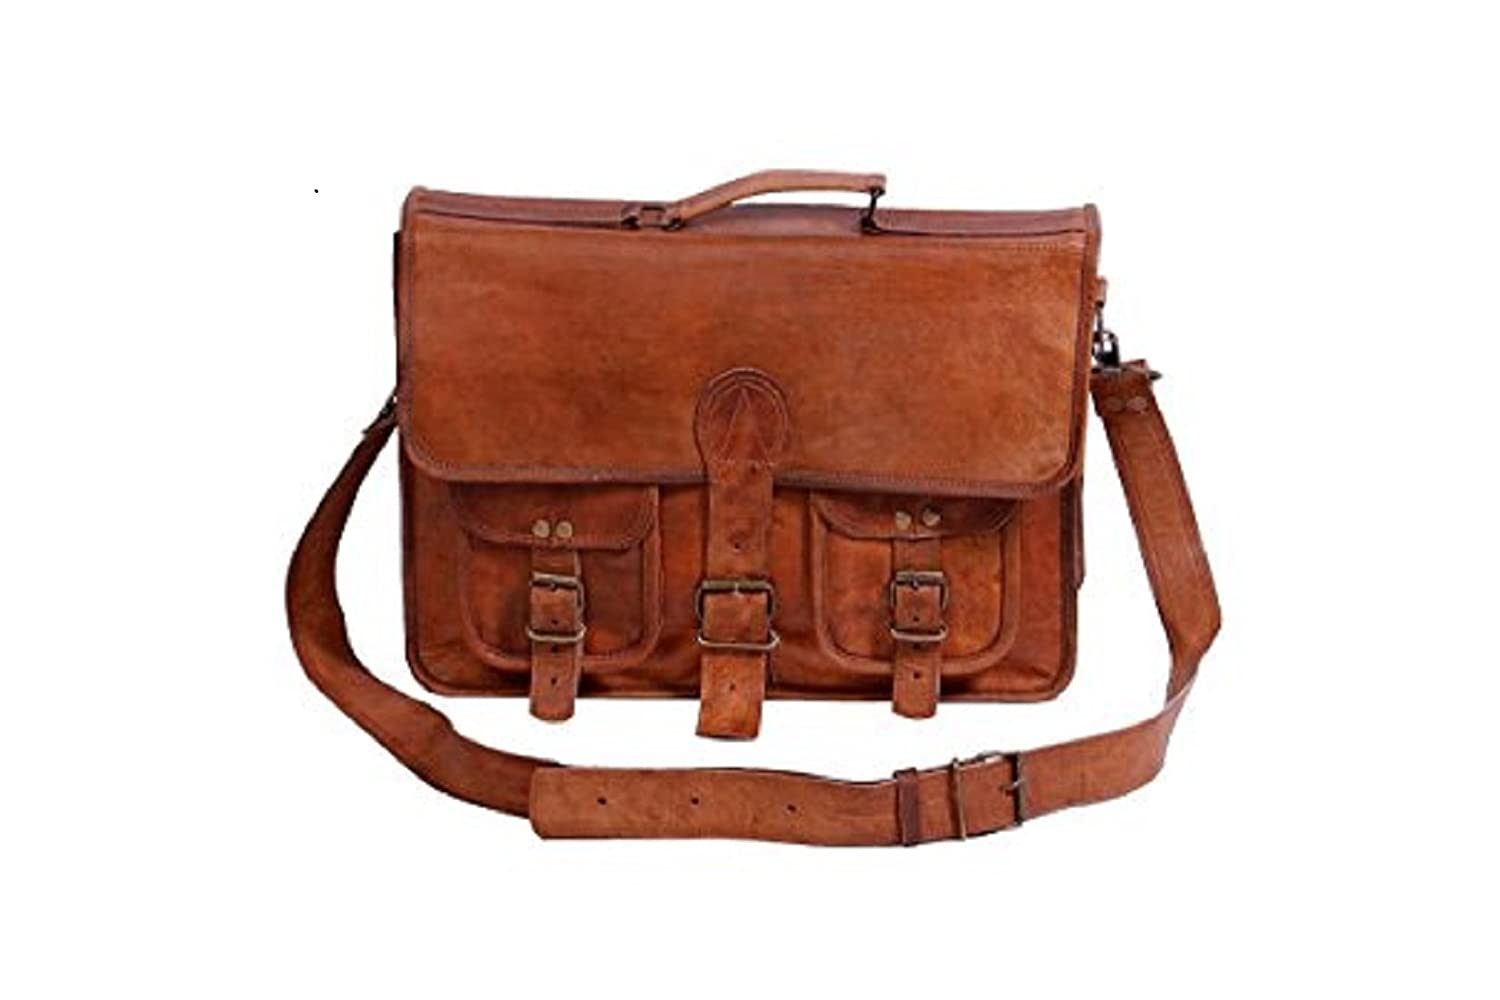 98834ad6540e Mk Bags vintage bags genuine leather messenger, Laptop bag cum office bag  563: Amazon.in: Bags, Wallets & Luggage